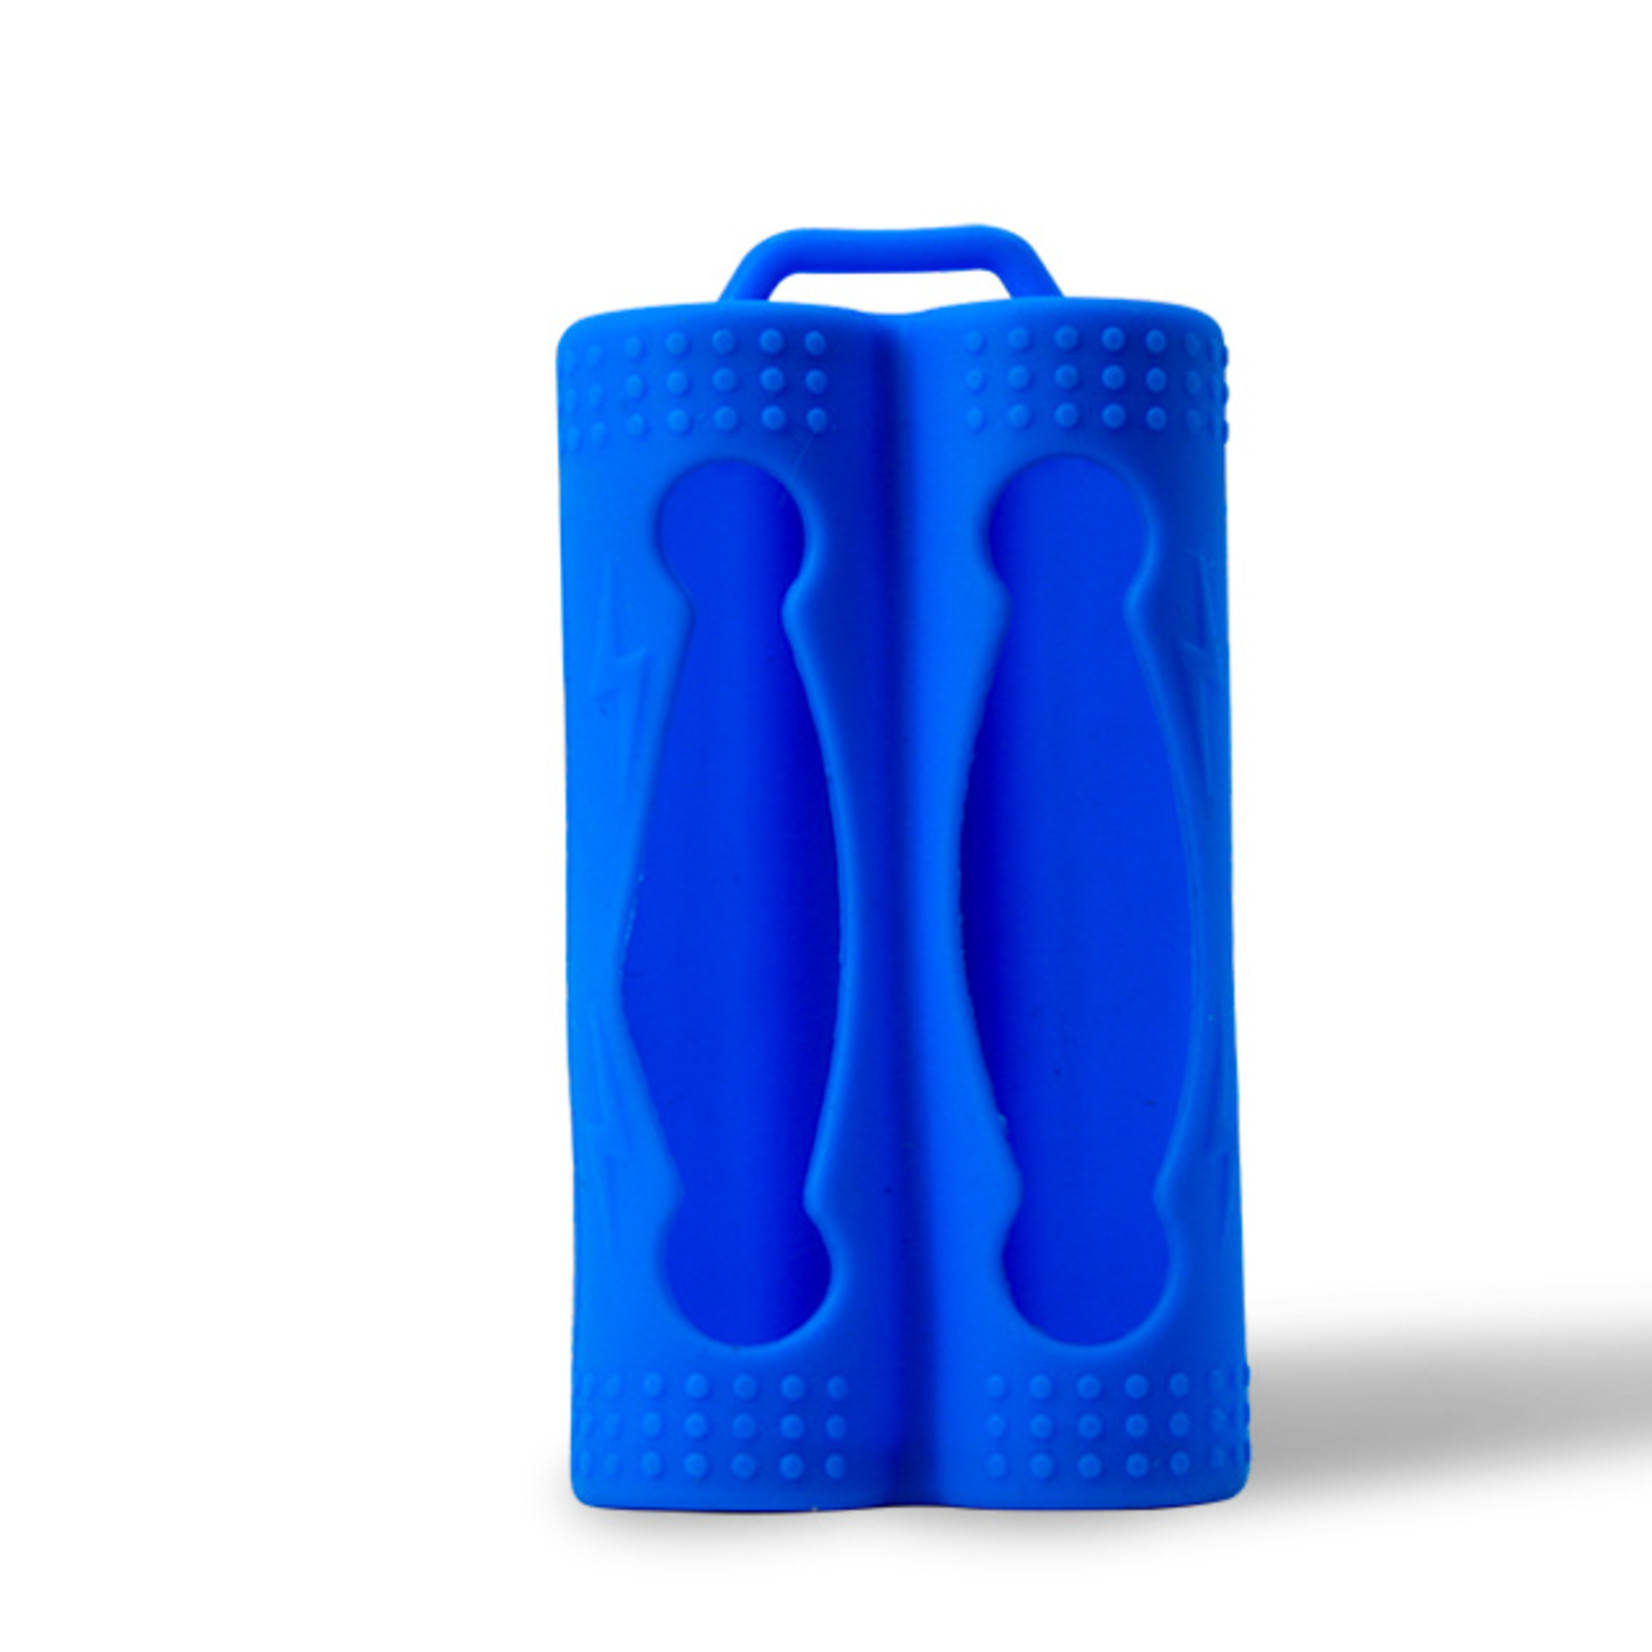 20700 / 21700 Dual Battery Silicone Protective Sleeve